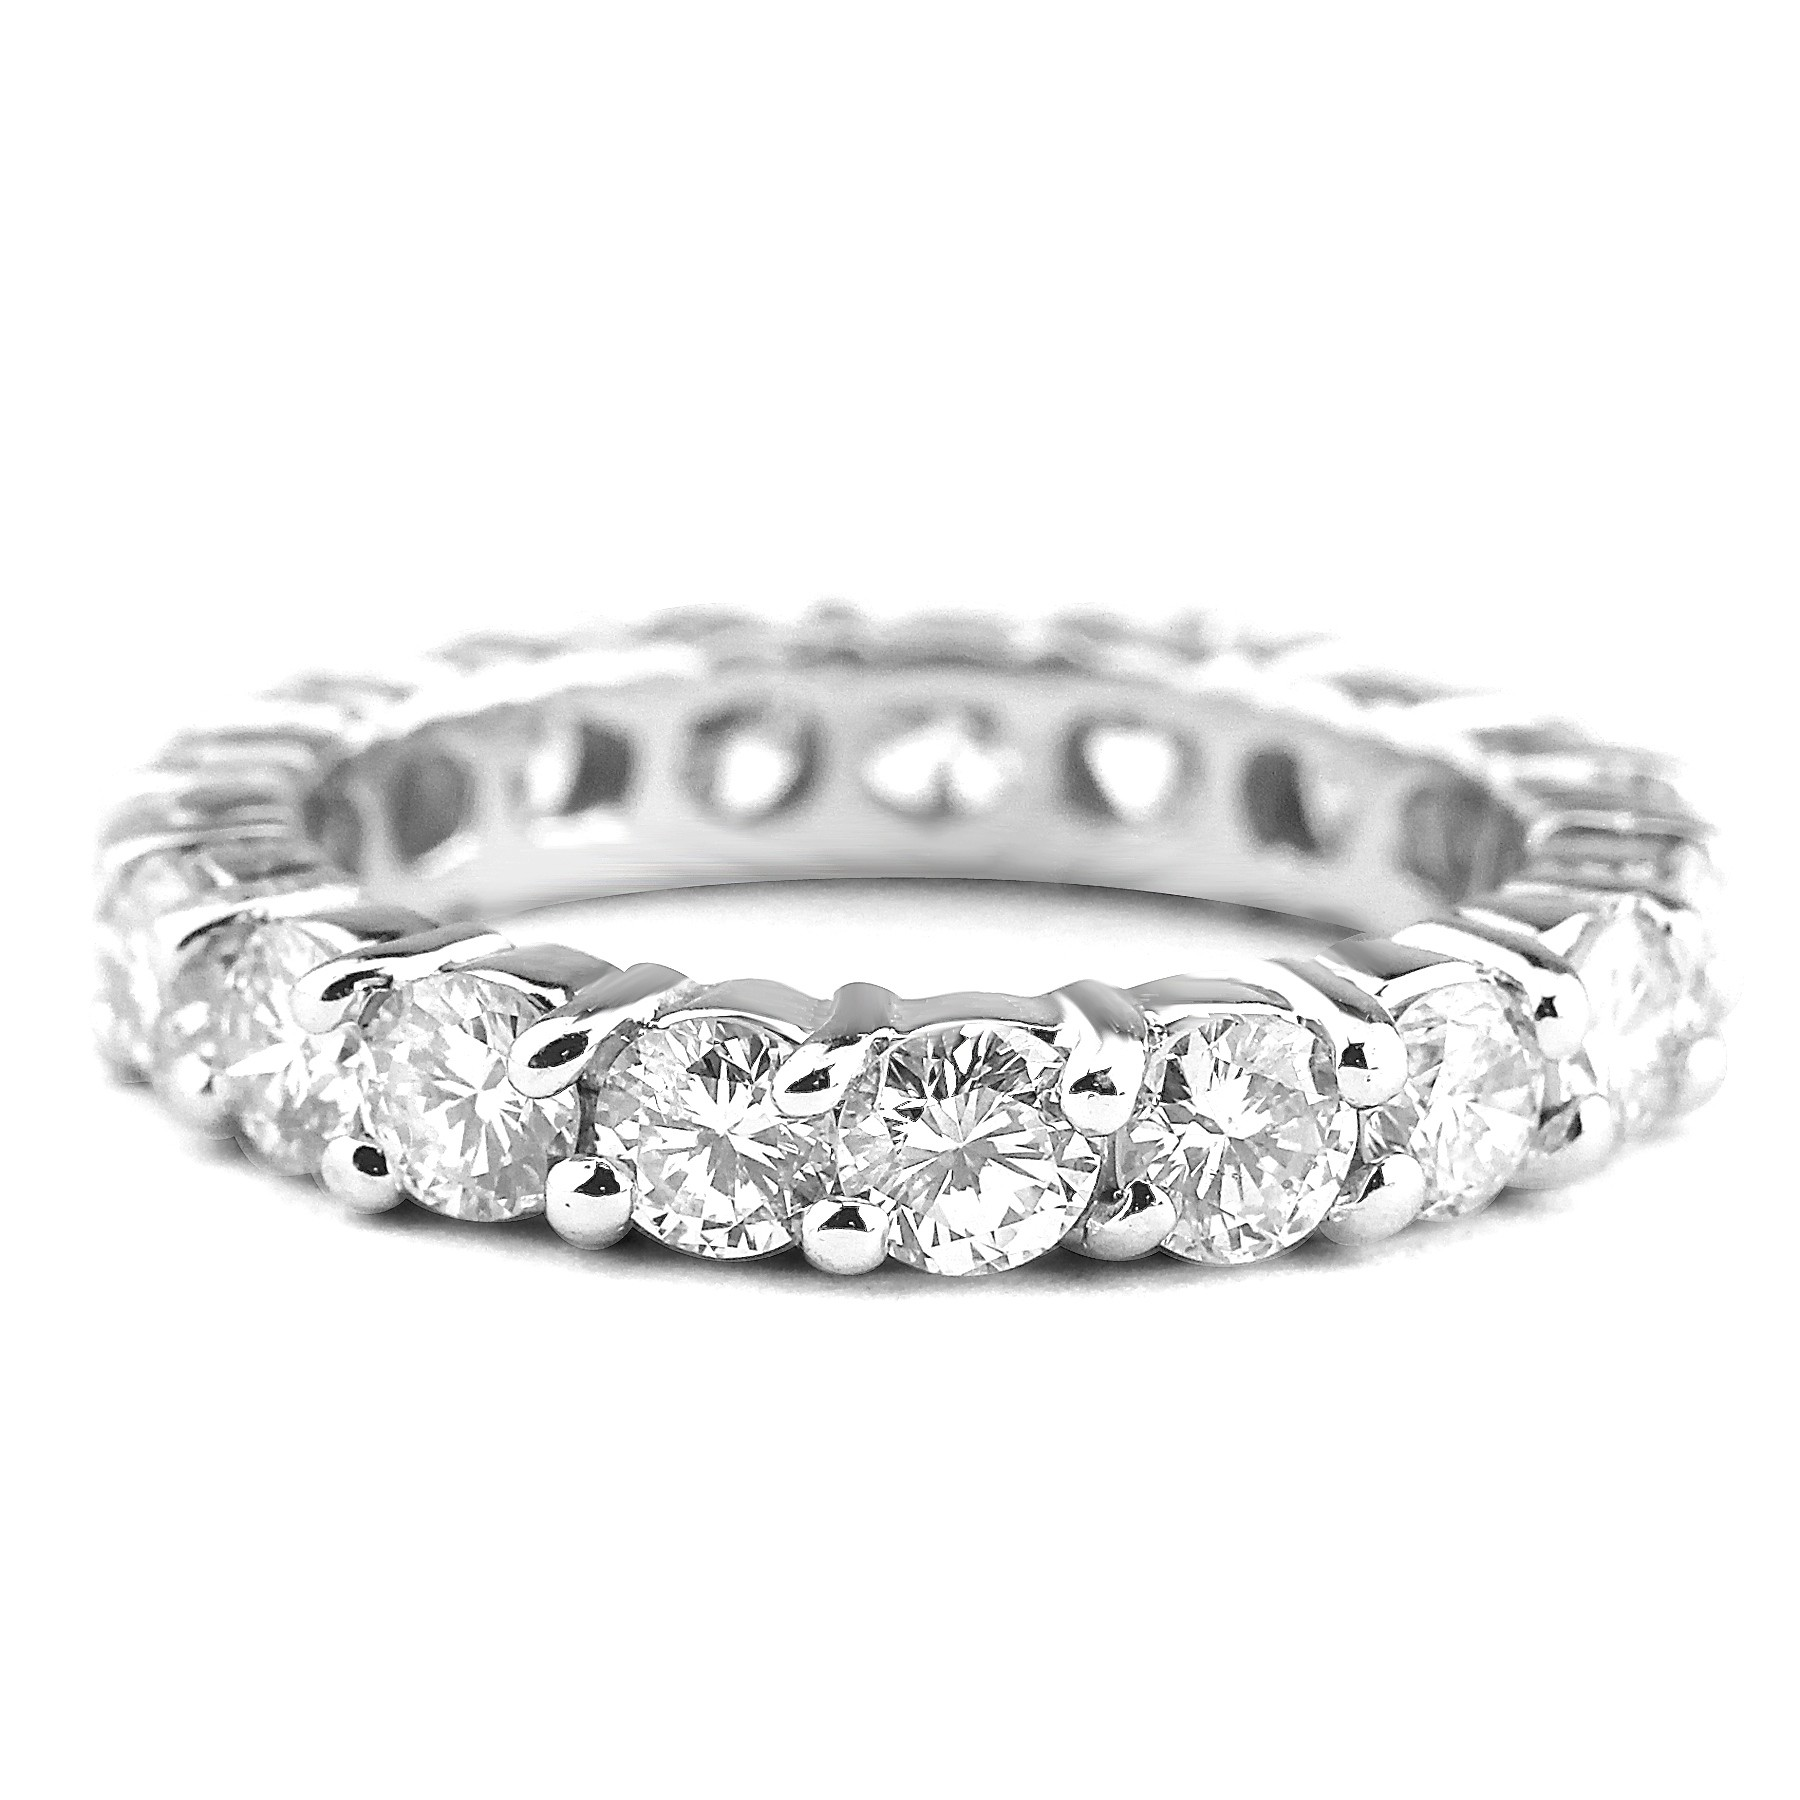 rings sale id diamonds j jewelry for bands at diamond betteridge carat wedding band platinum eternity features of brilliant beautiful round master org